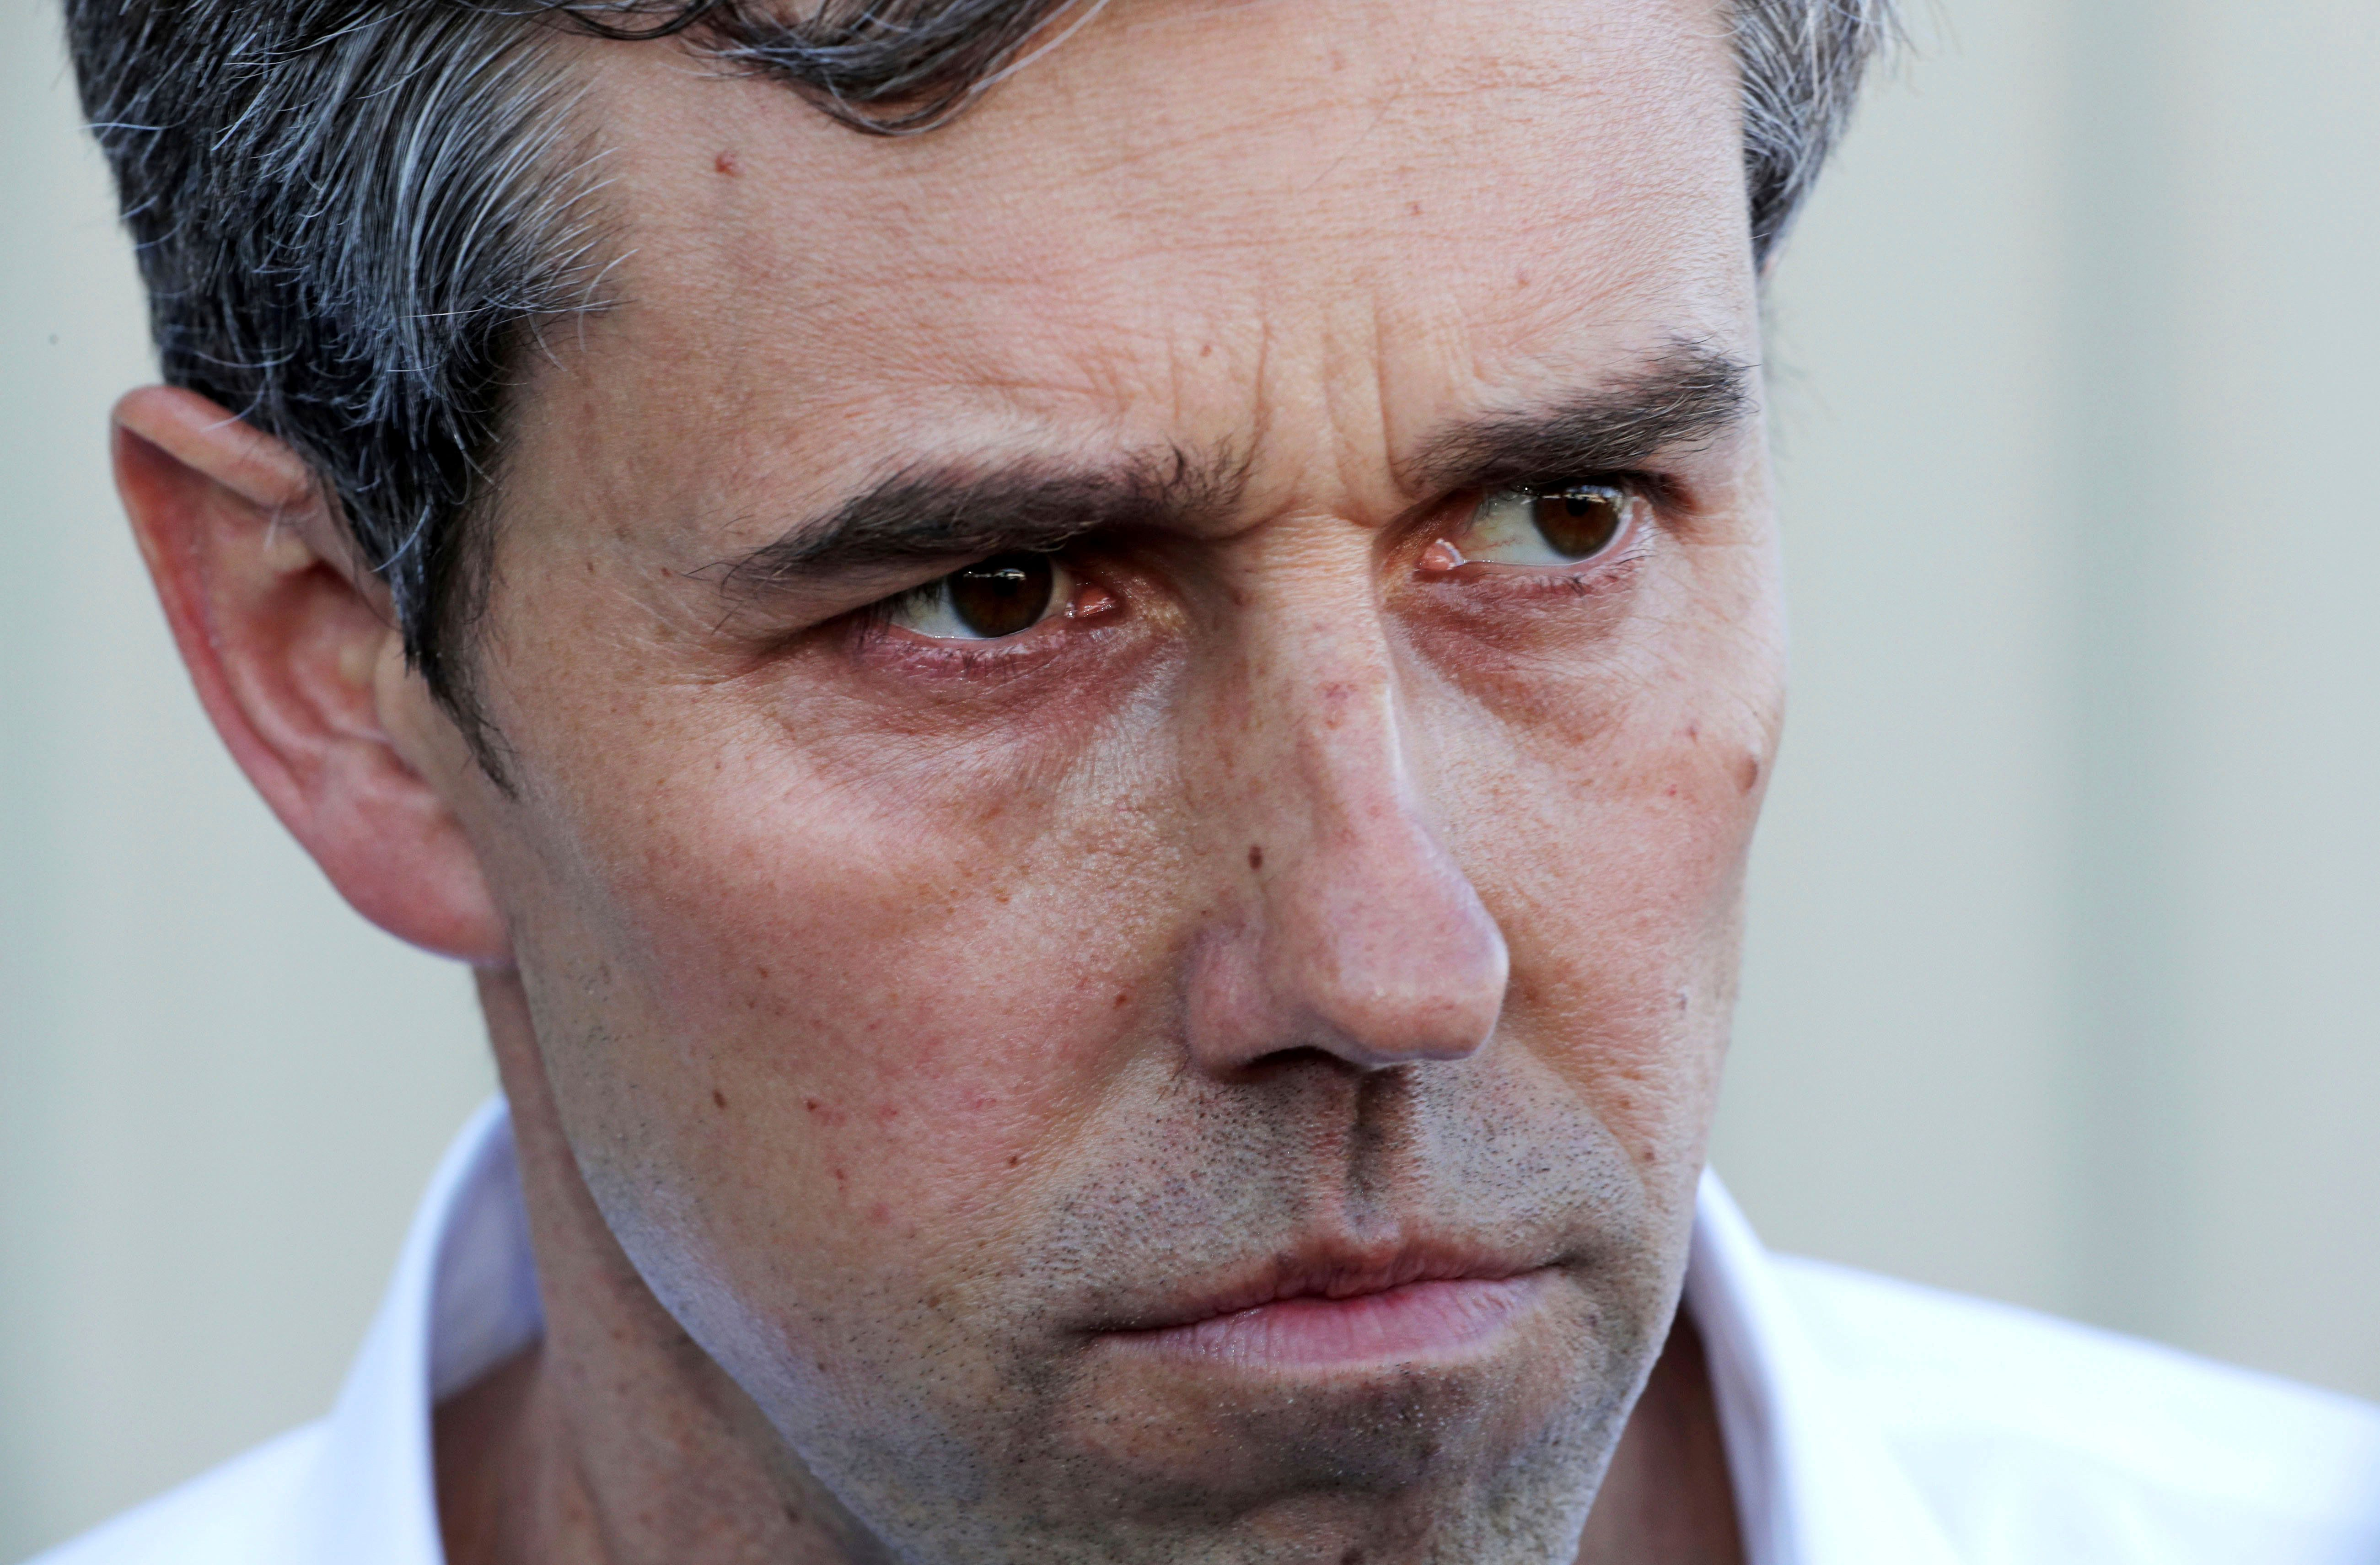 Former Texas congressman Beto O'Rourke listens to a question during a campaign stop at a brewery in Conway, N.H., Wednesday, March 20, 2019. O'Rourke announced last week that he'll seek the 2020 Democratic presidential nomination. (AP Photo/Charles Krupa)